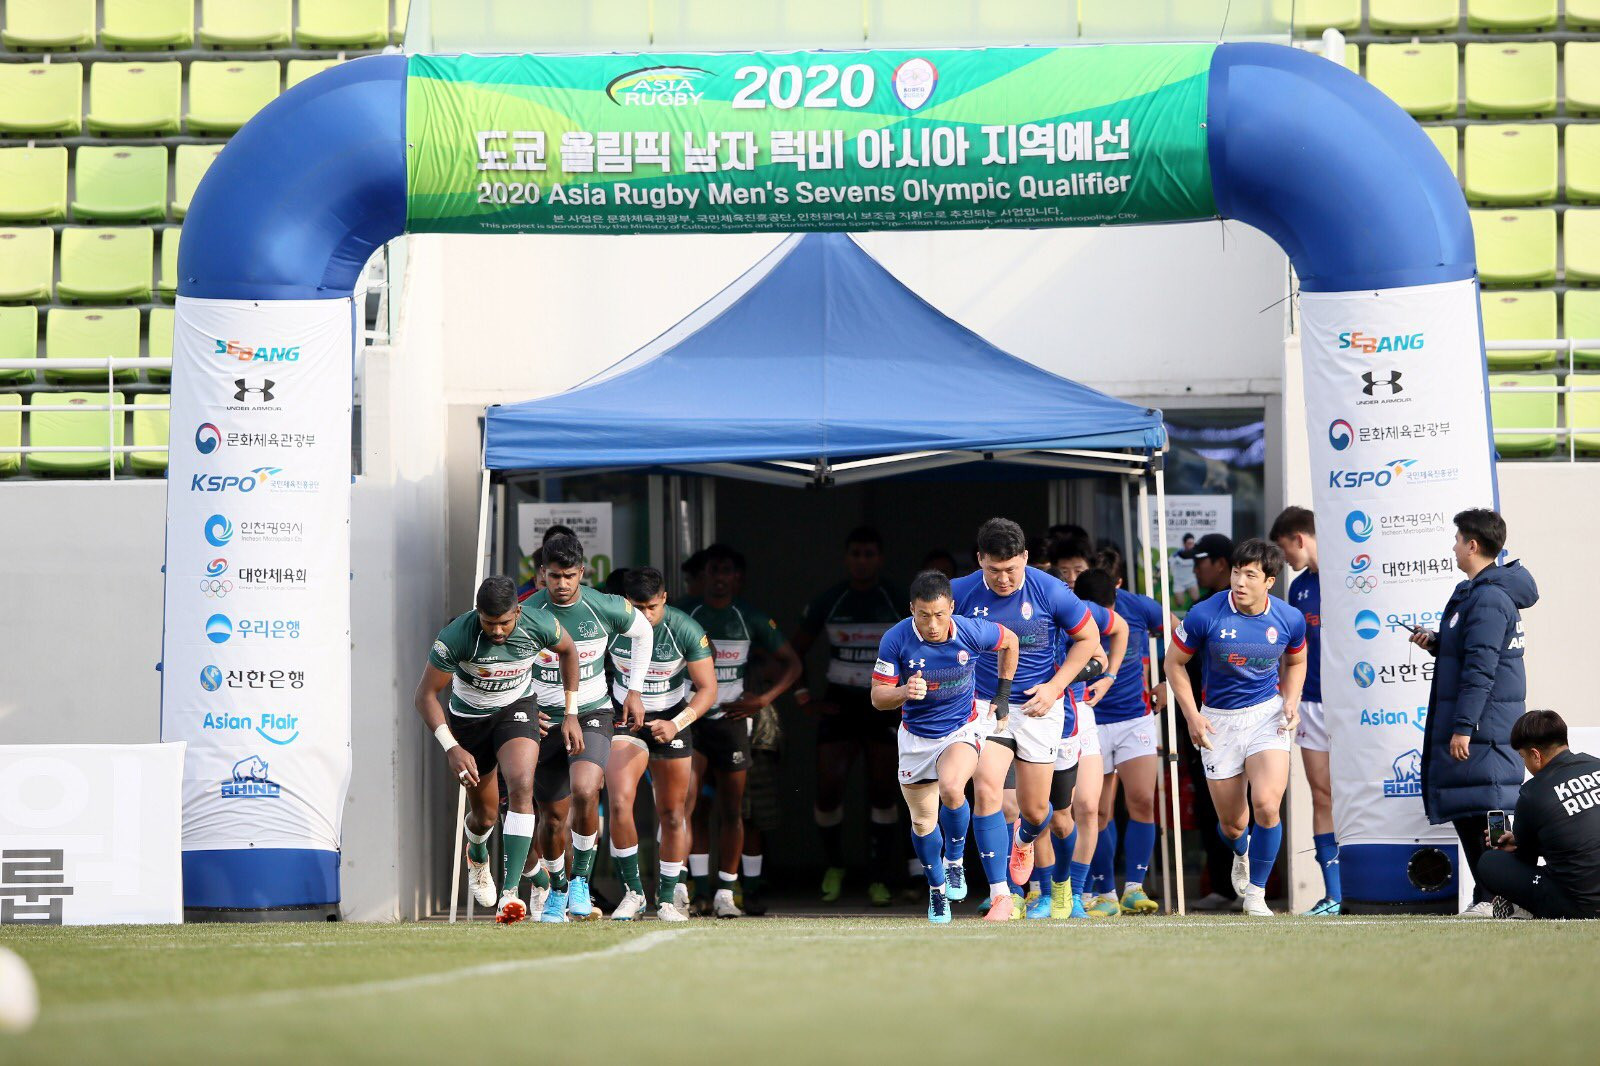 Hong Kong reach quarter-finals at Asian men's rugby sevens Olympic qualifier